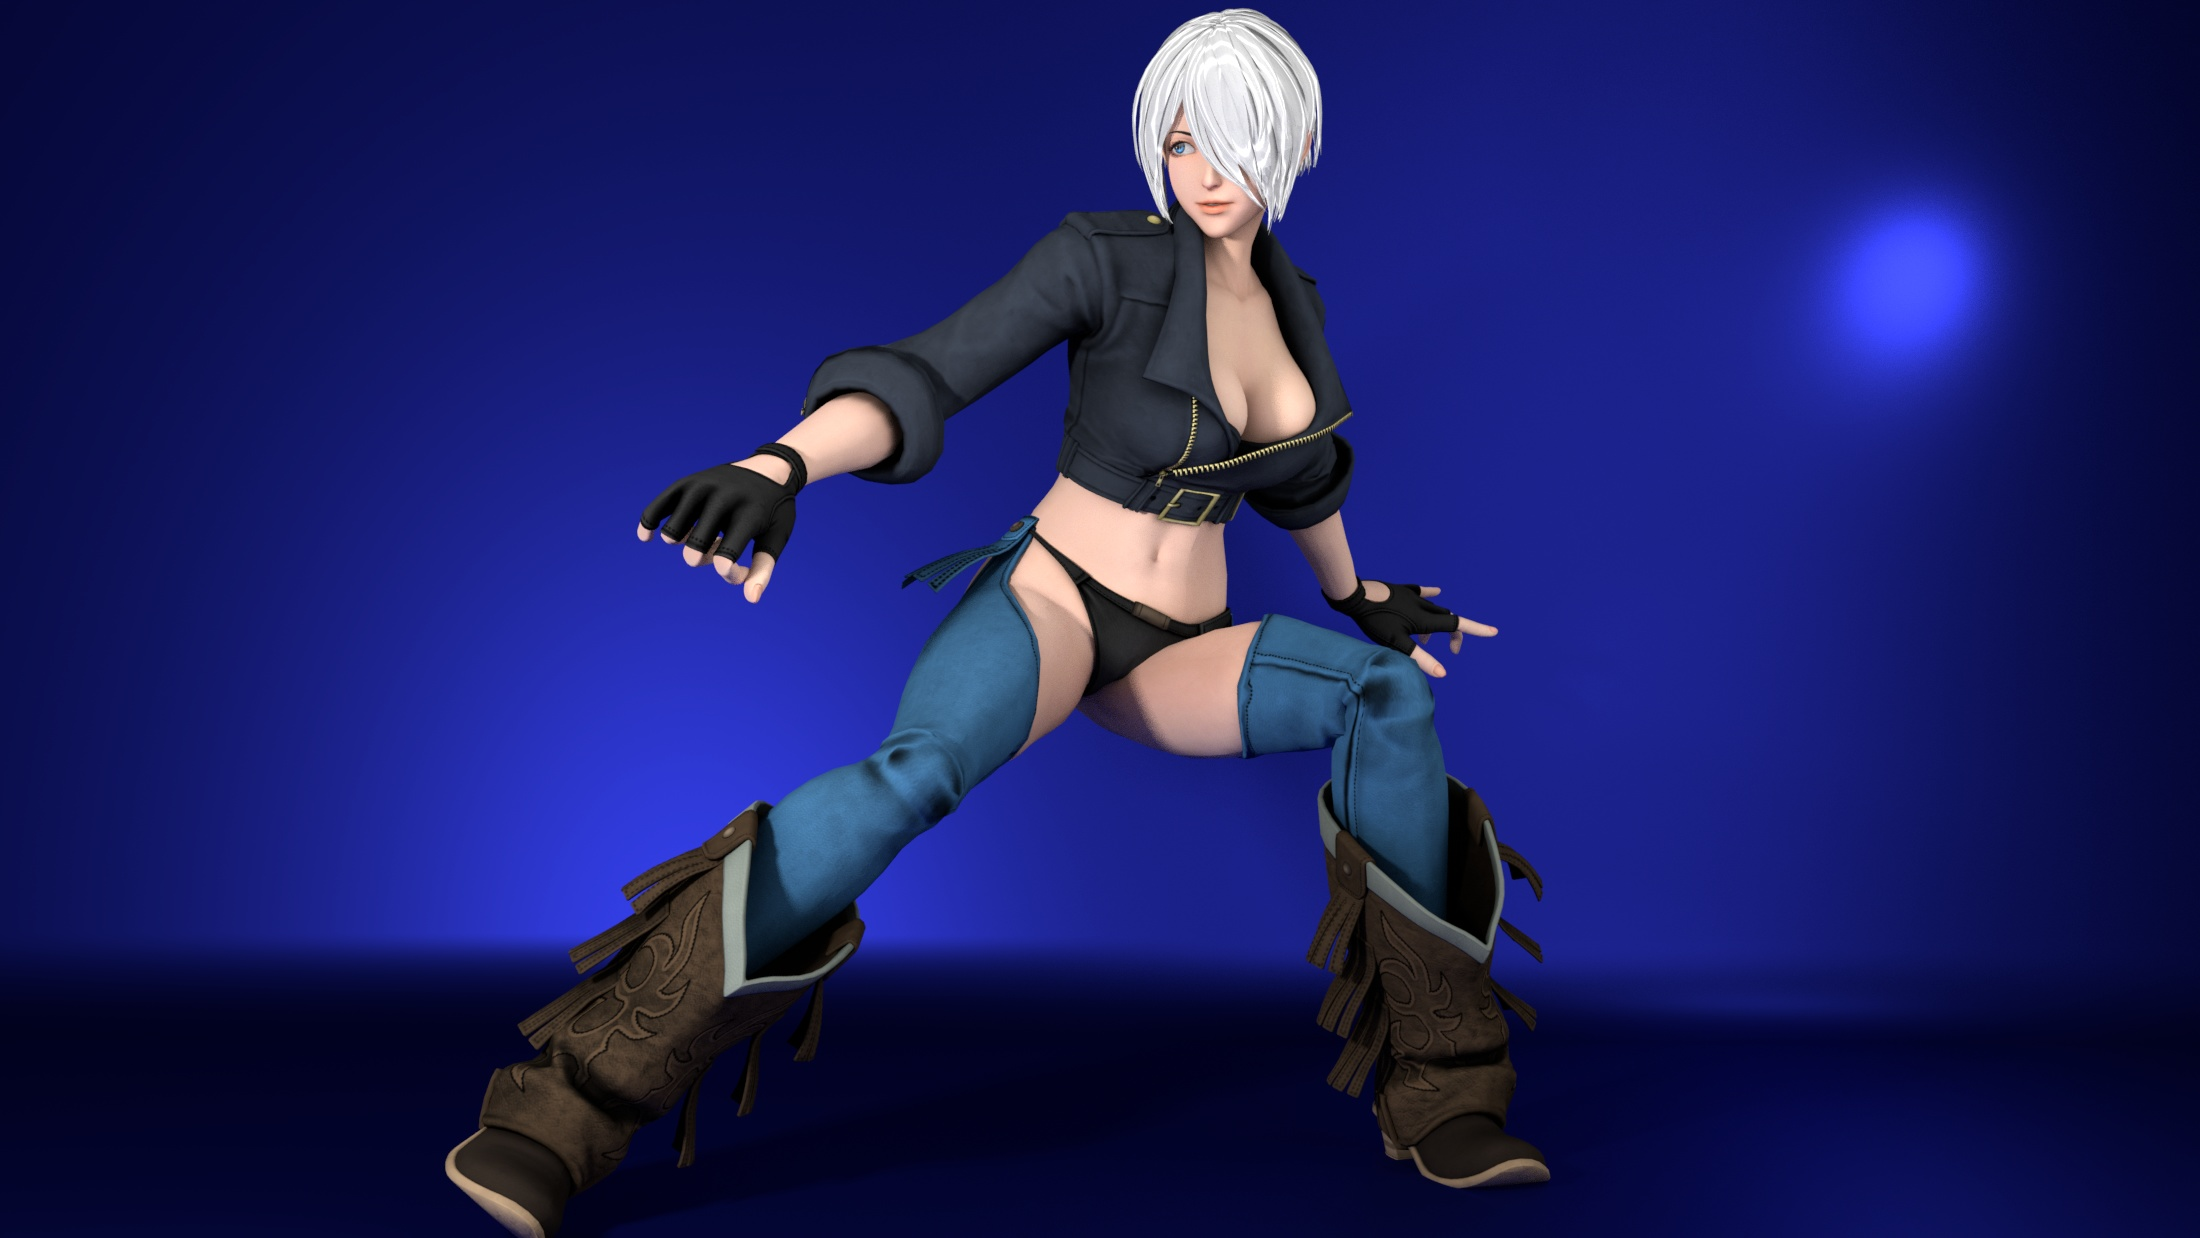 Angel Kof 5 By Photonlanccer On Deviantart Kof vs dnf is one of many fighting games to play online on your web browser for free at kbh games. angel kof 5 by photonlanccer on deviantart